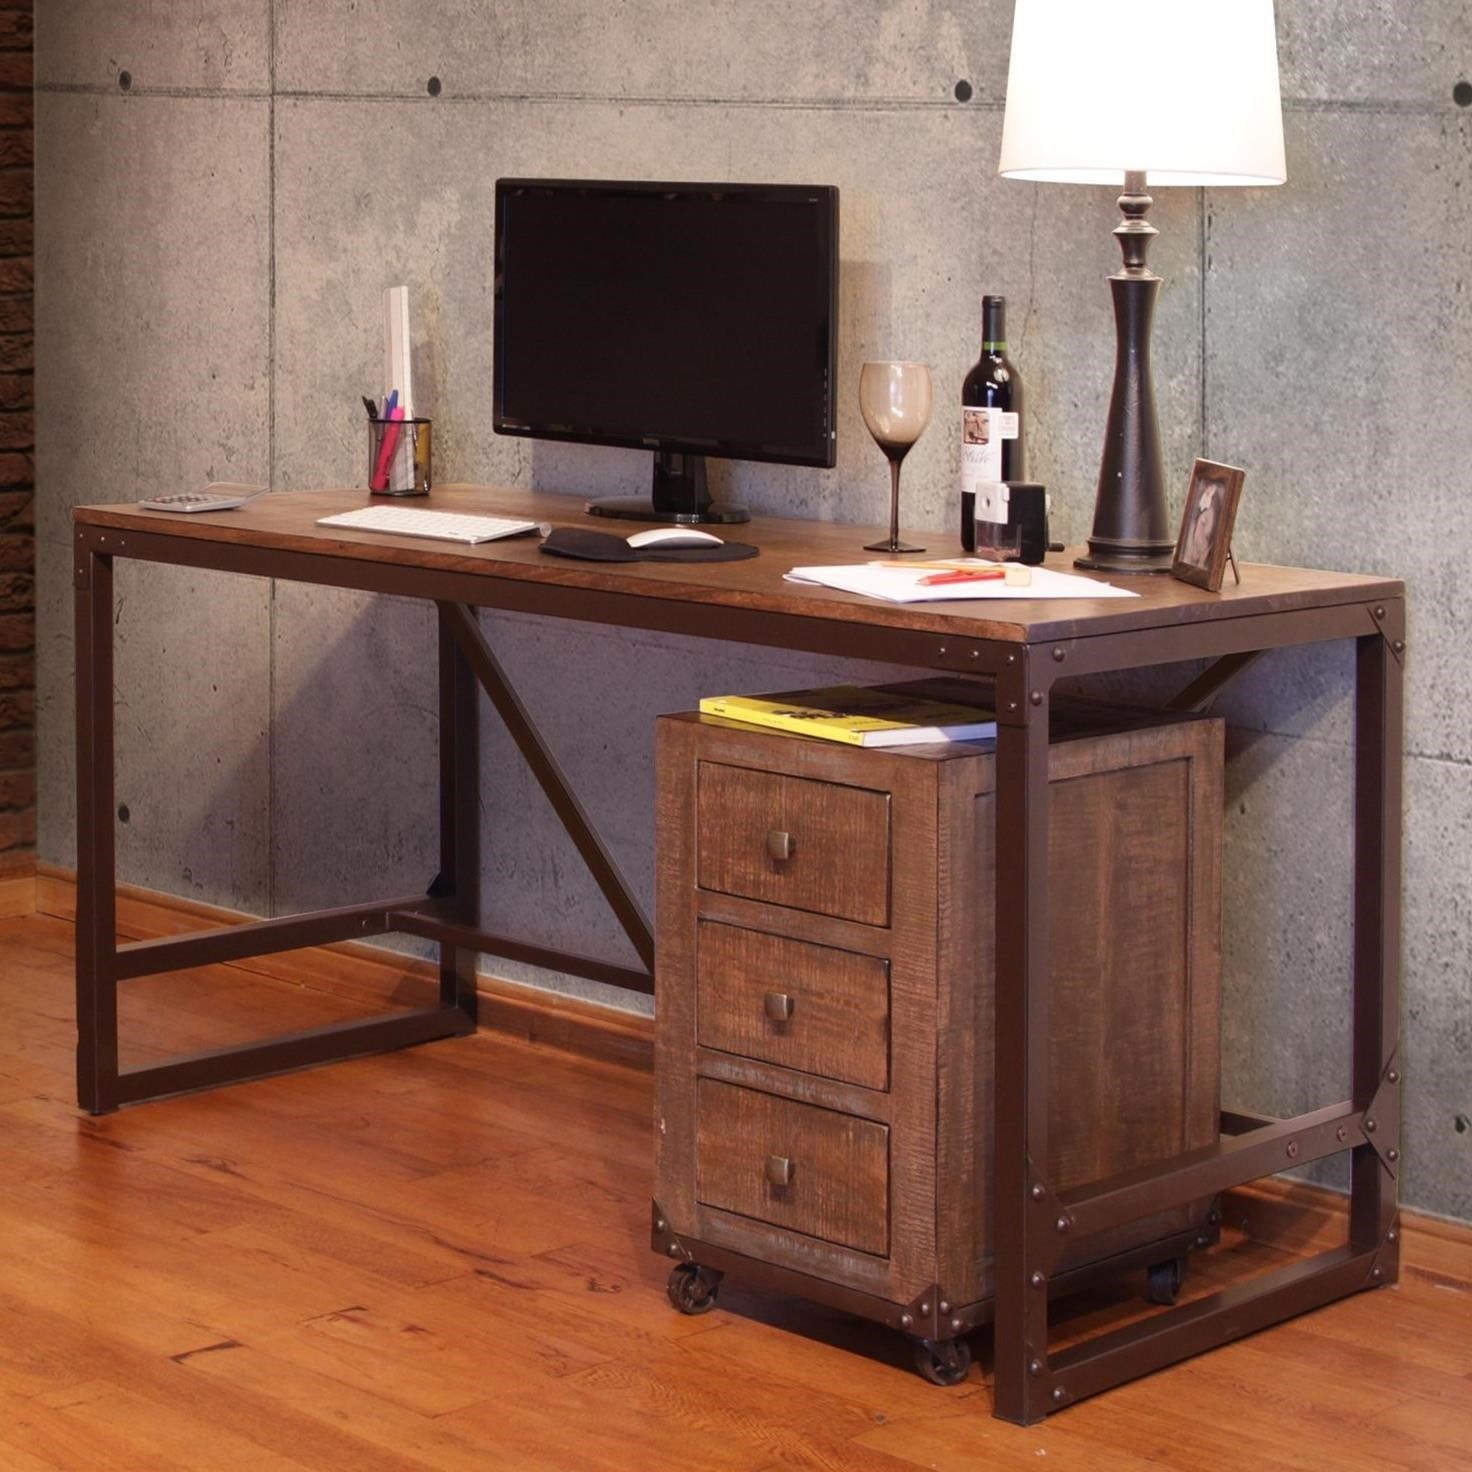 urban style office look rustic cool table dining side most lap furniture desk vision industrial